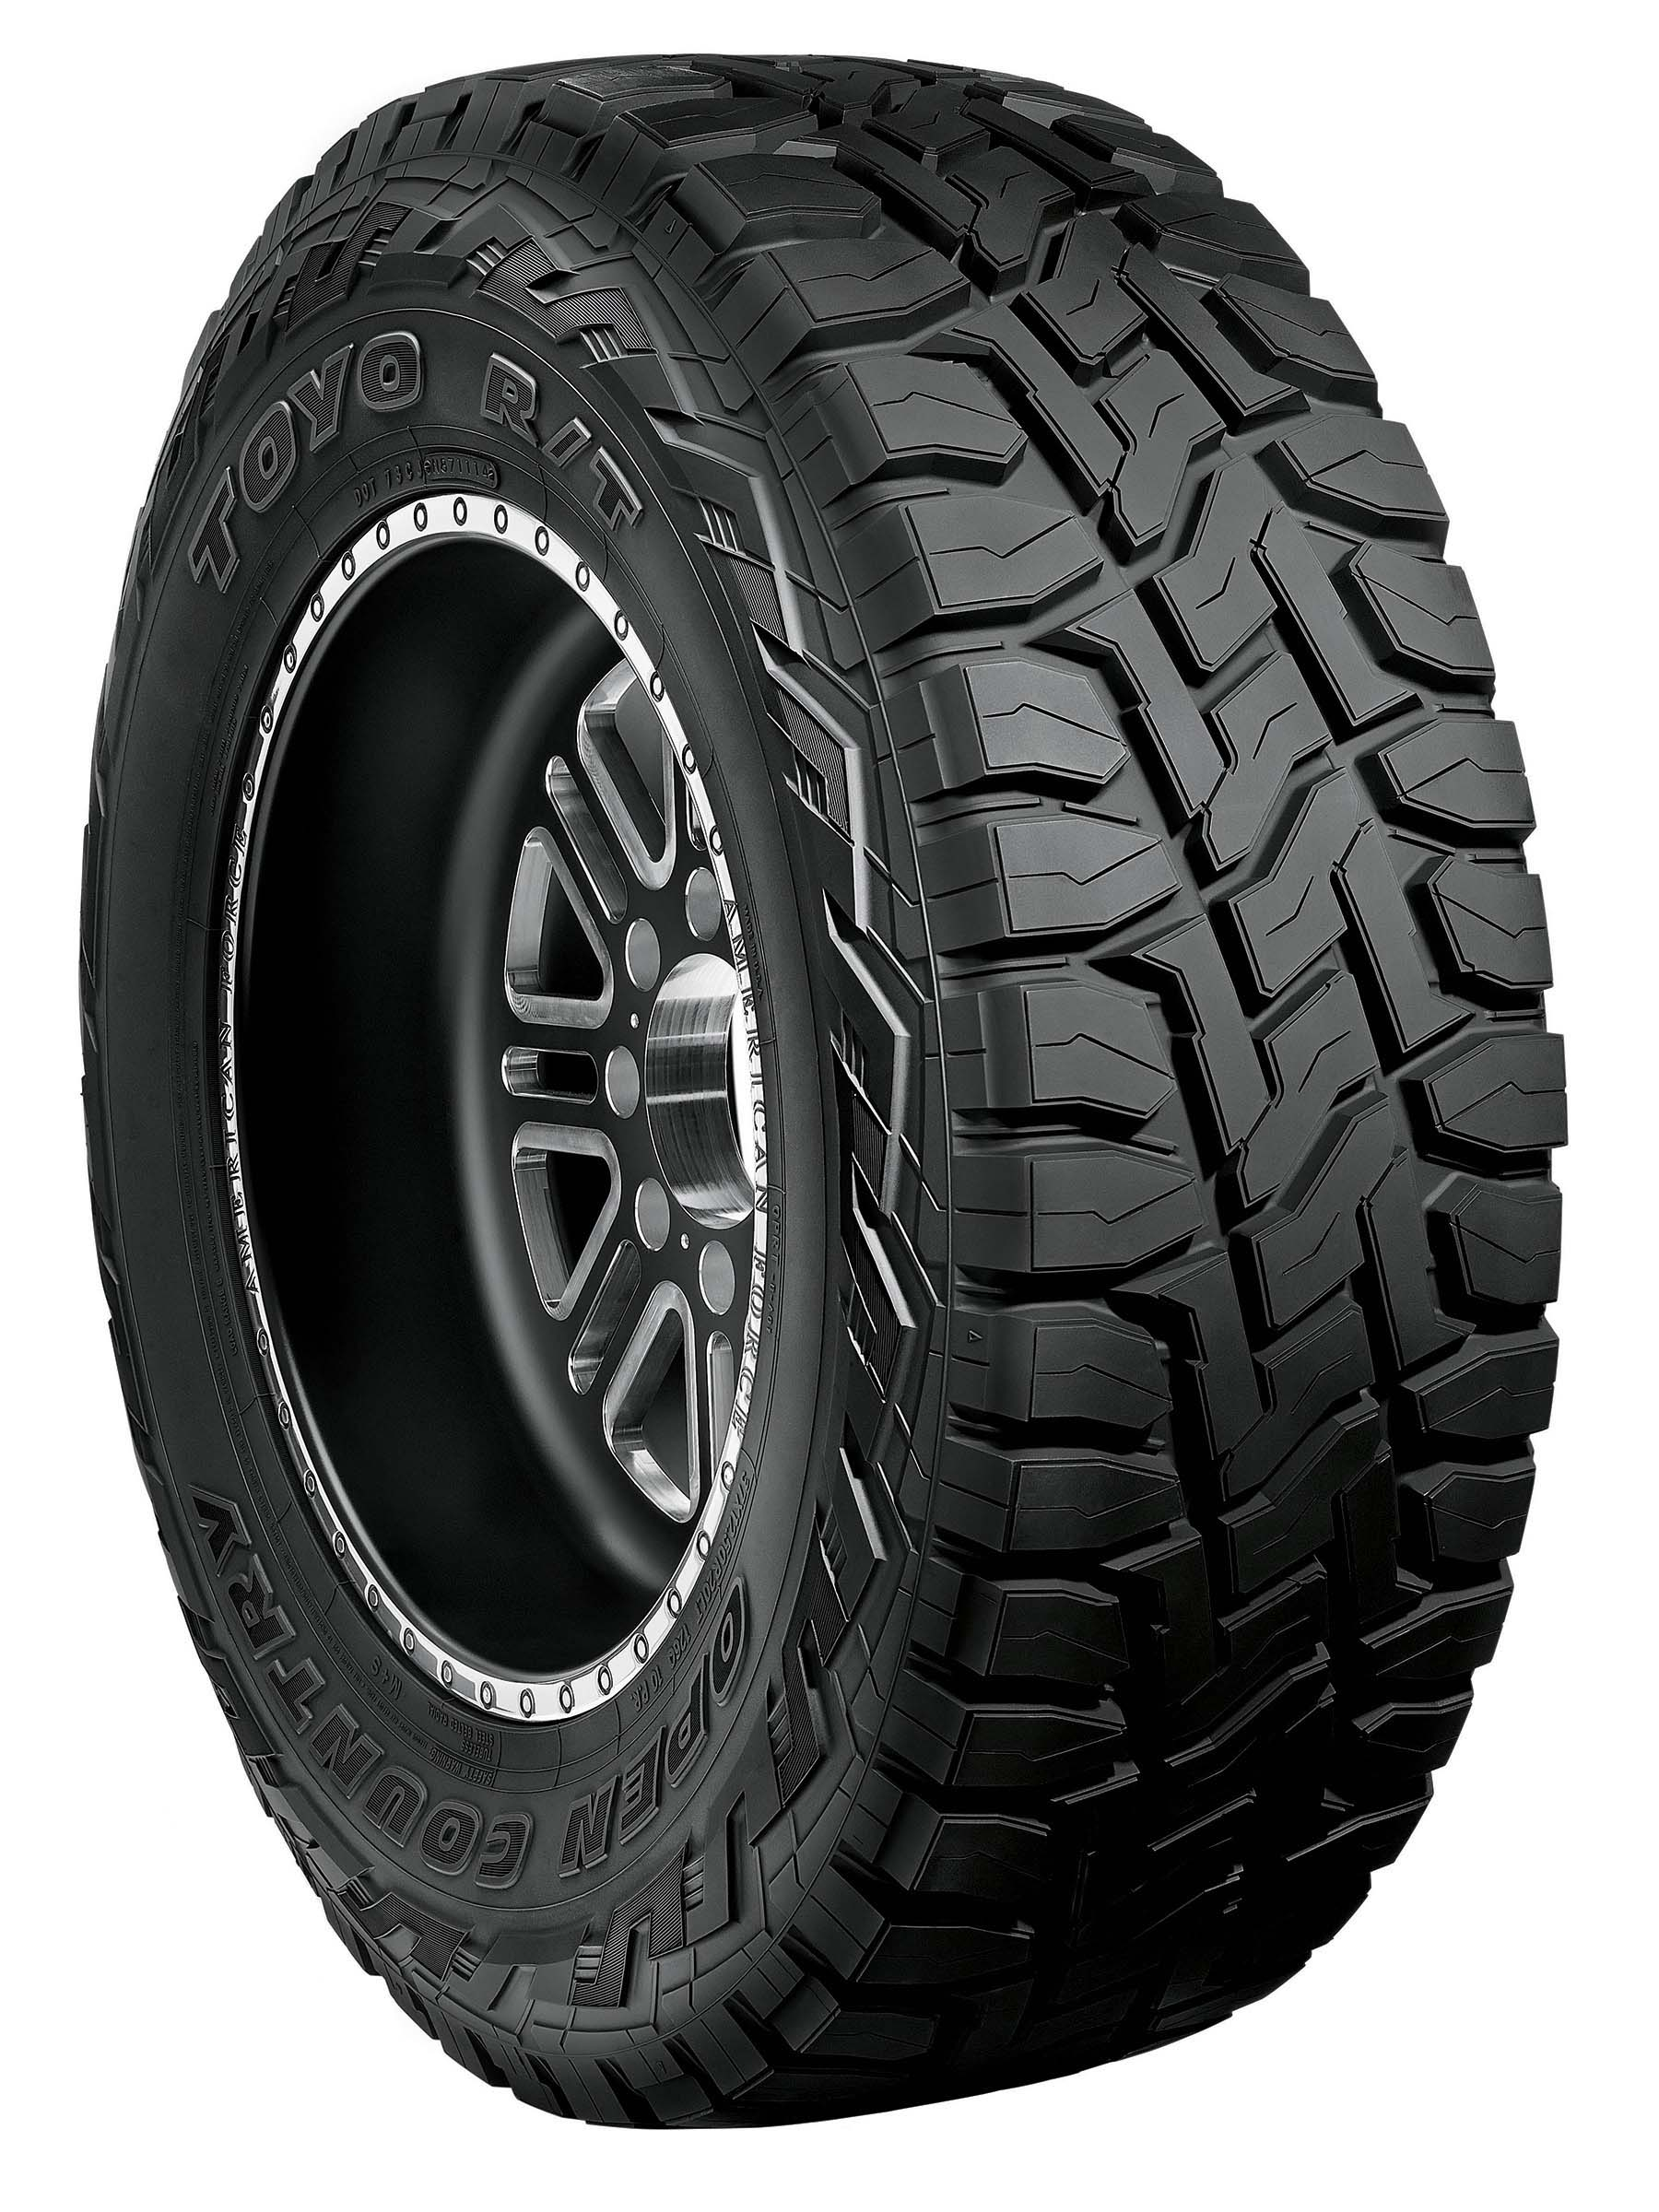 New Toyo Open Country R T is Built Rugged for Any Terrain